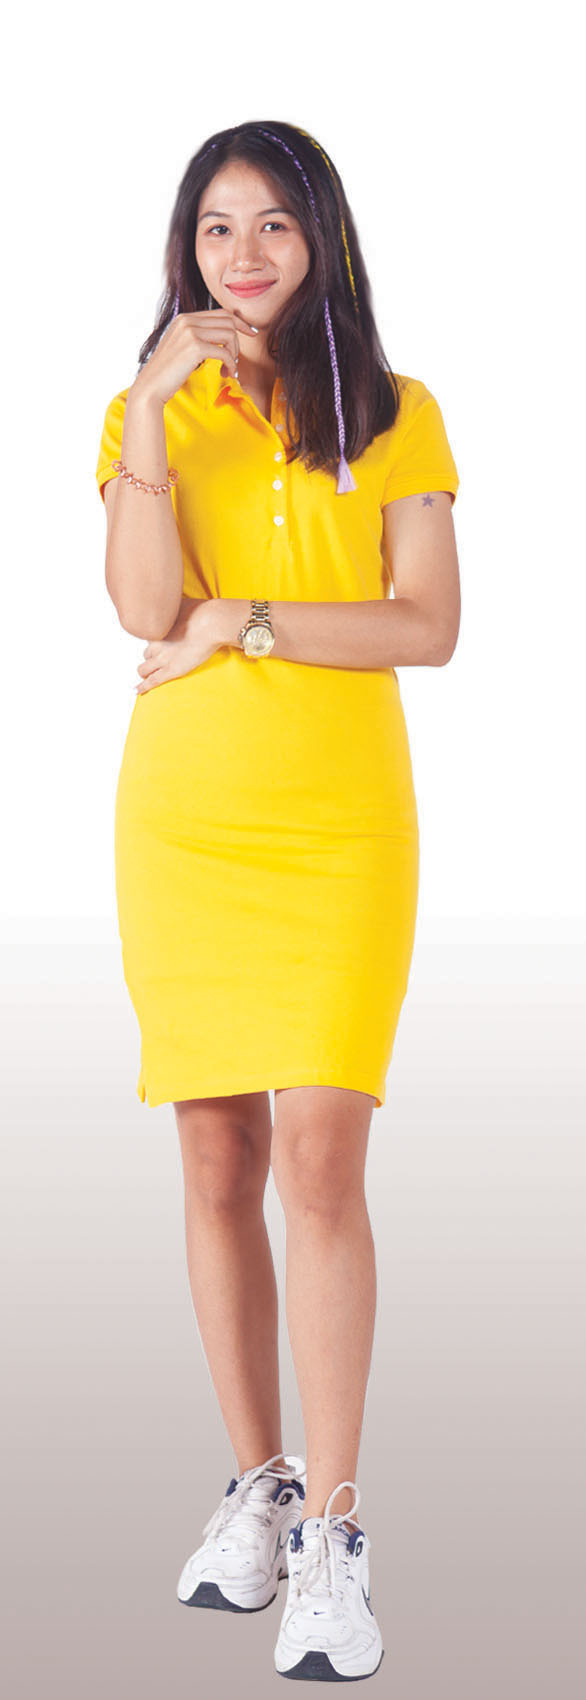 dress_polo_yellow